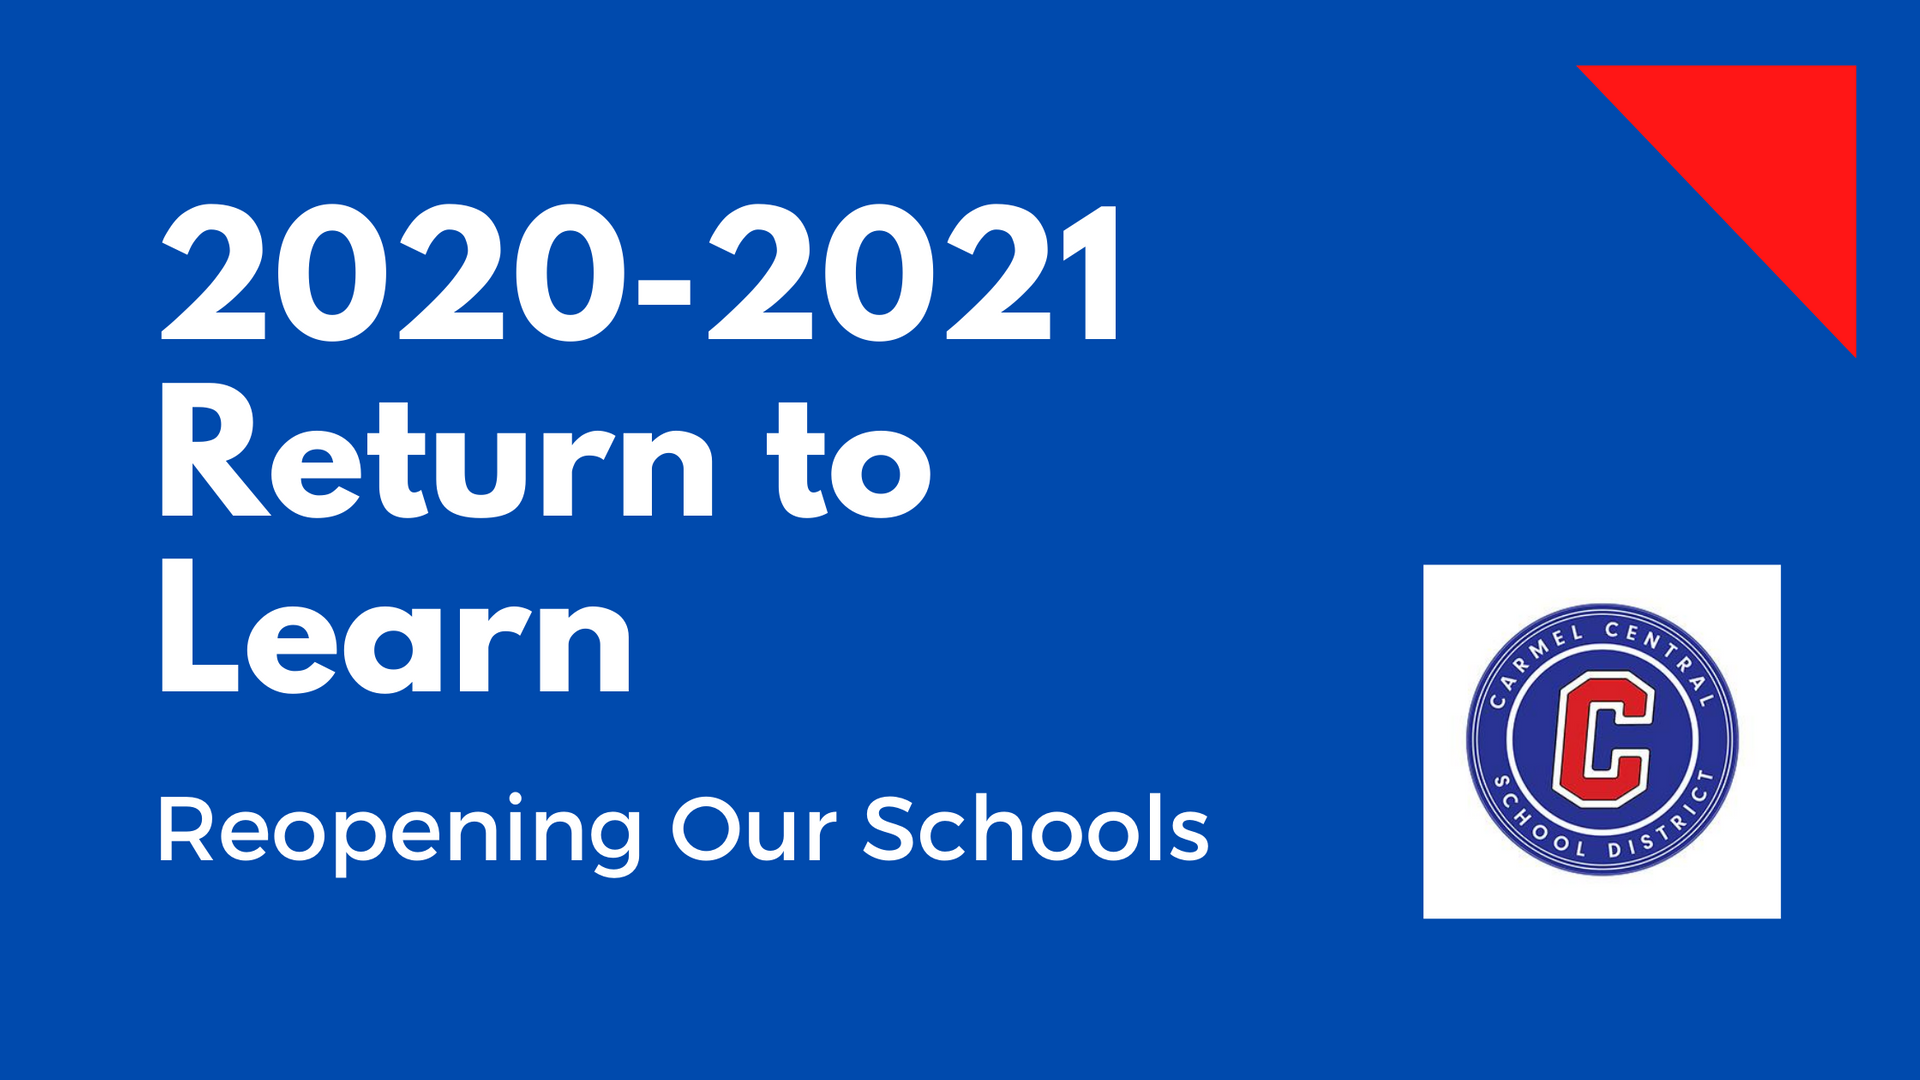 Return to Learn-Reopening our Schools